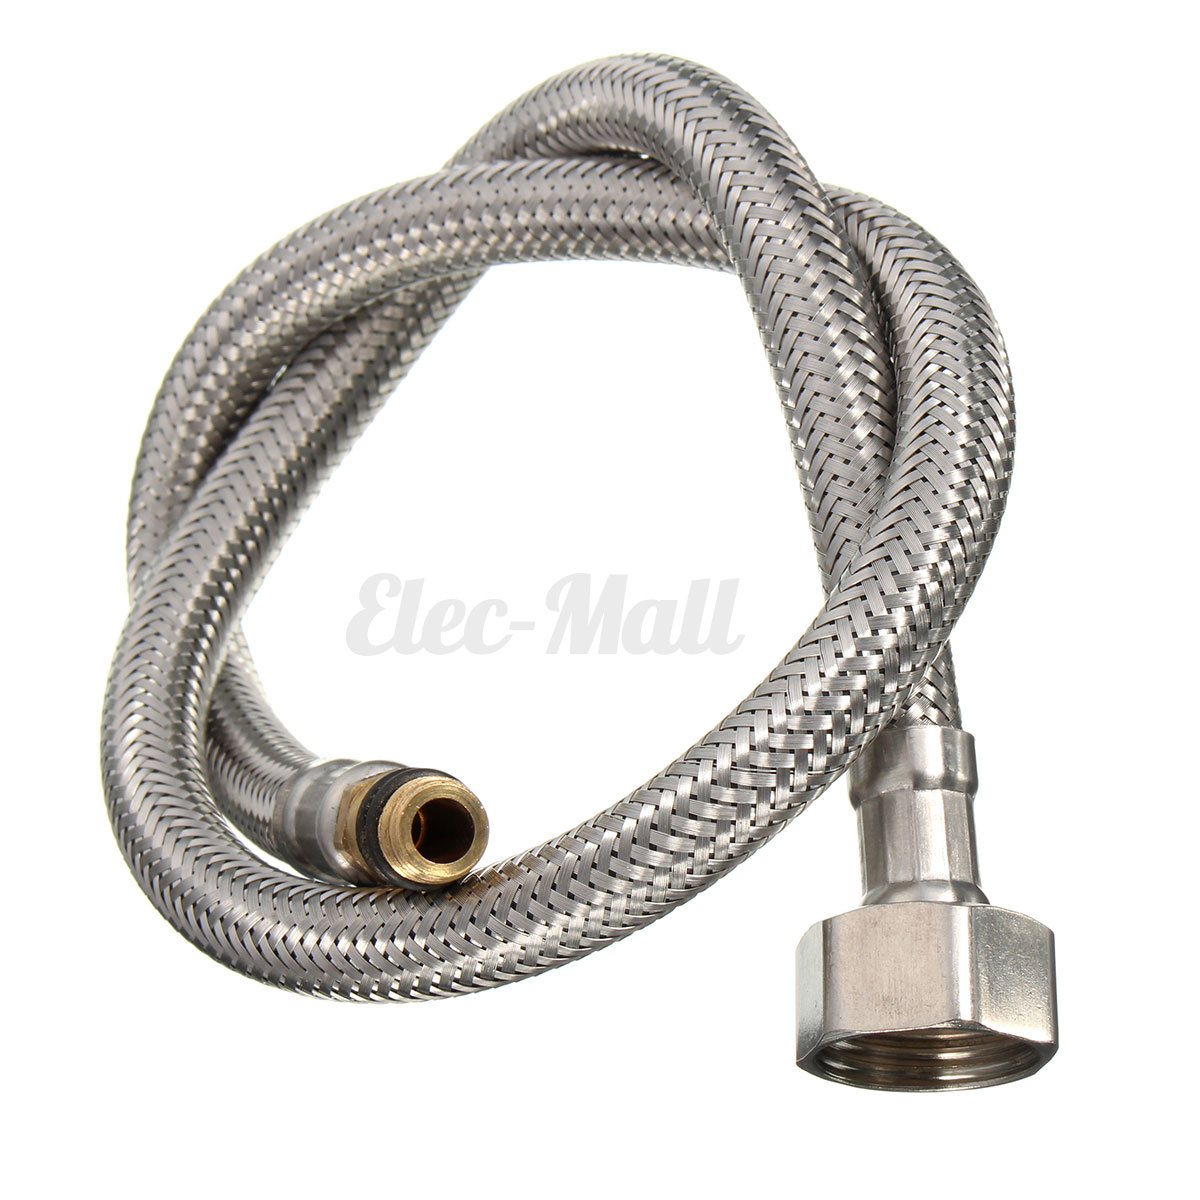 2pcs Stainless Steel Flexible 1 2 Id Water Supply Line Hoses Fit Most Faucets Ebay